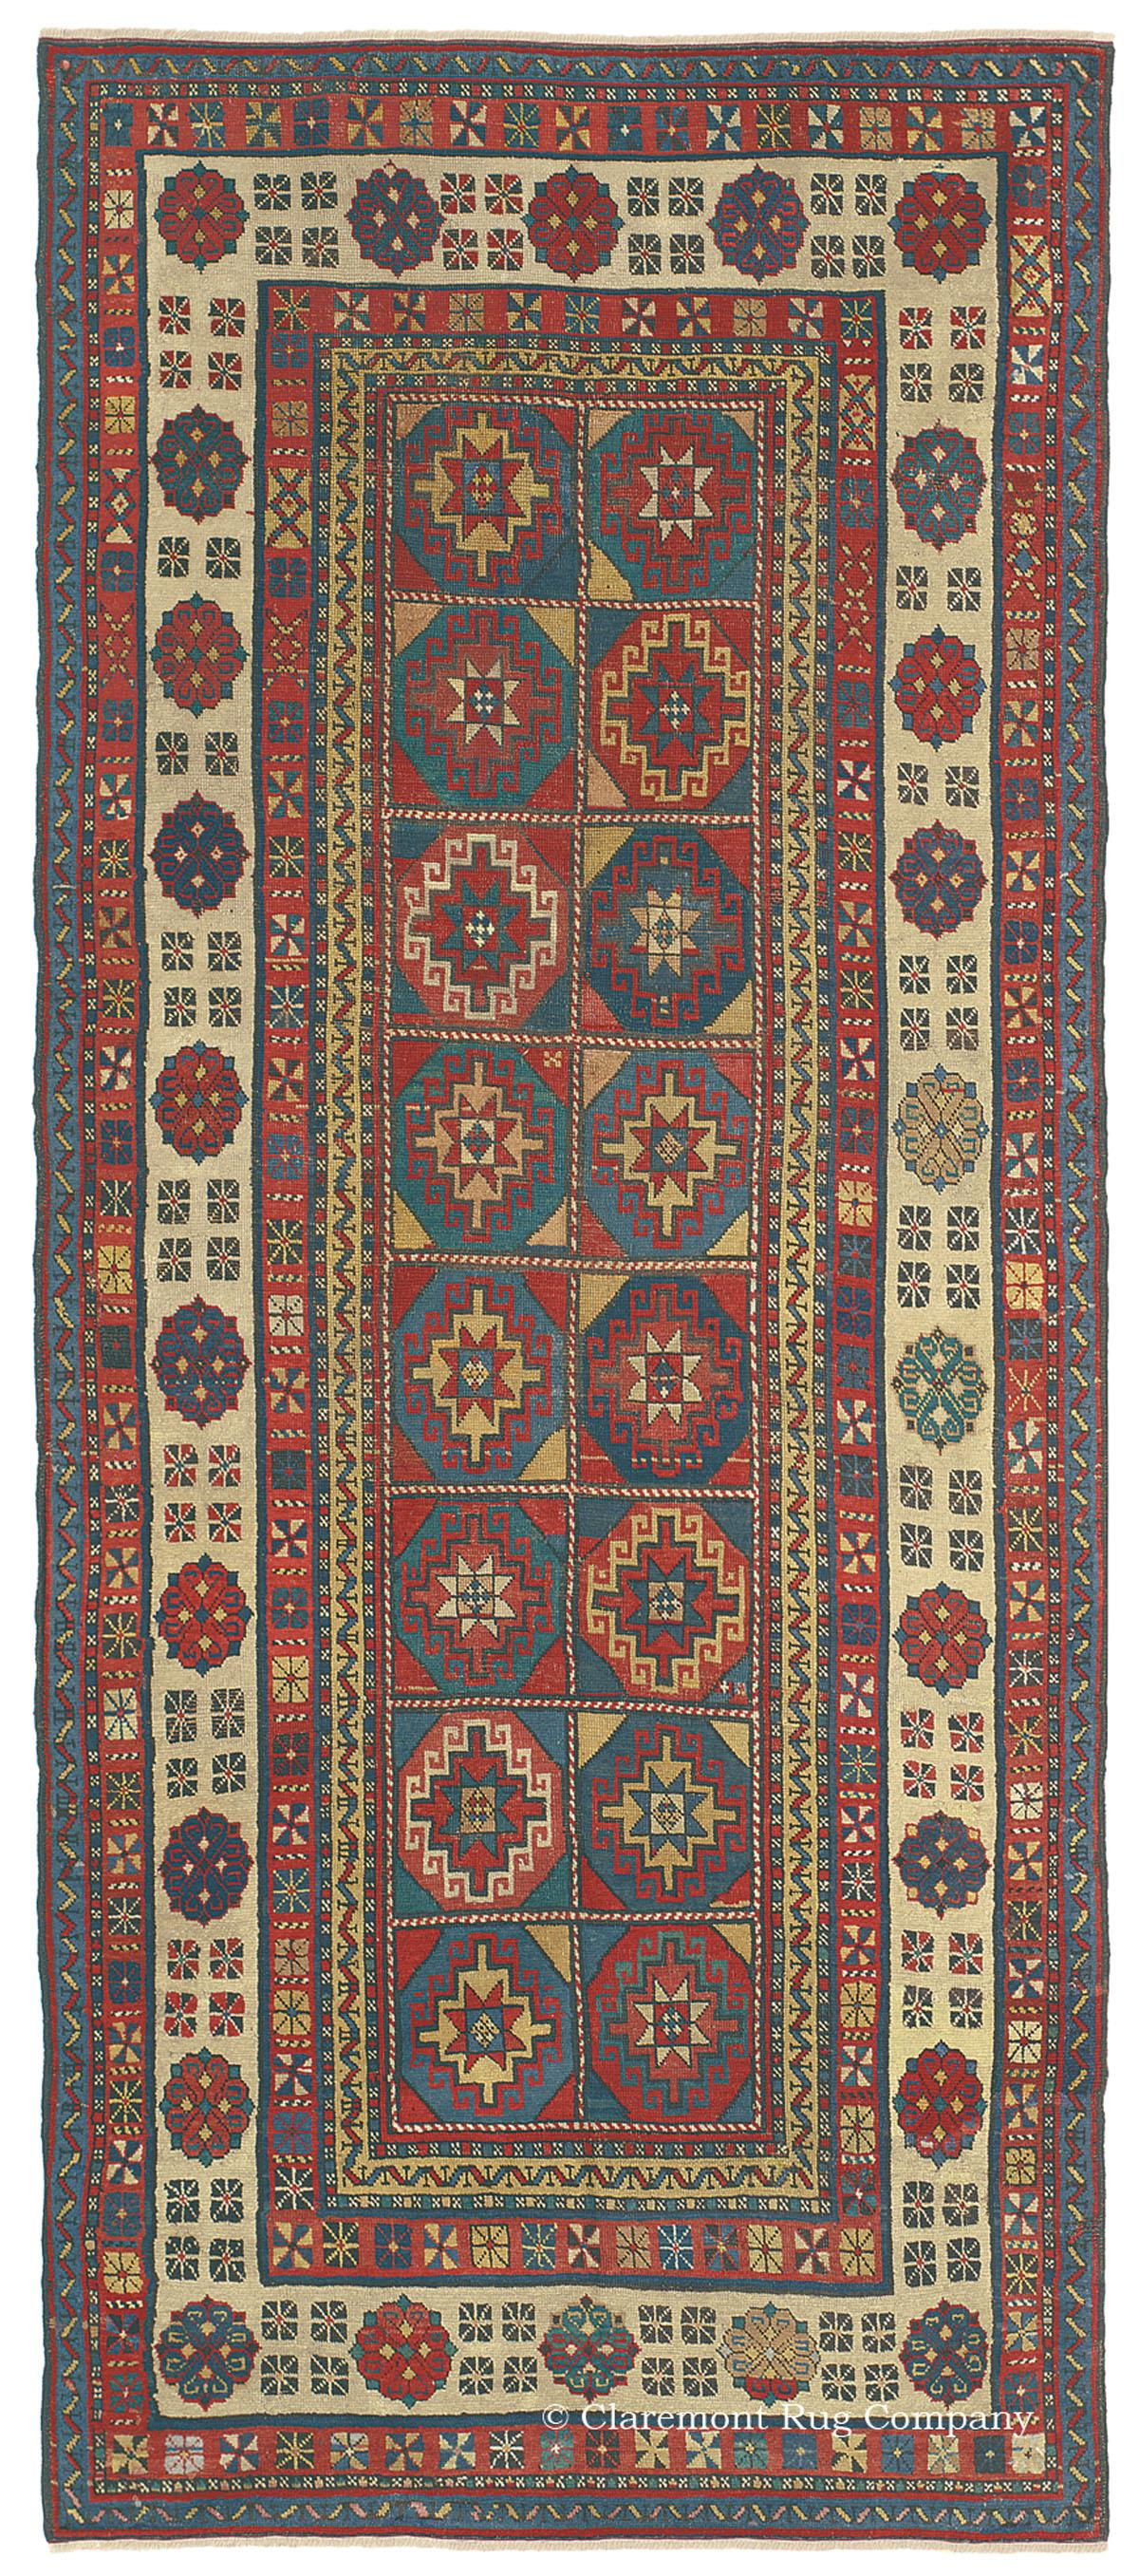 Masterful 19th Century Caucasian Antique Carpet